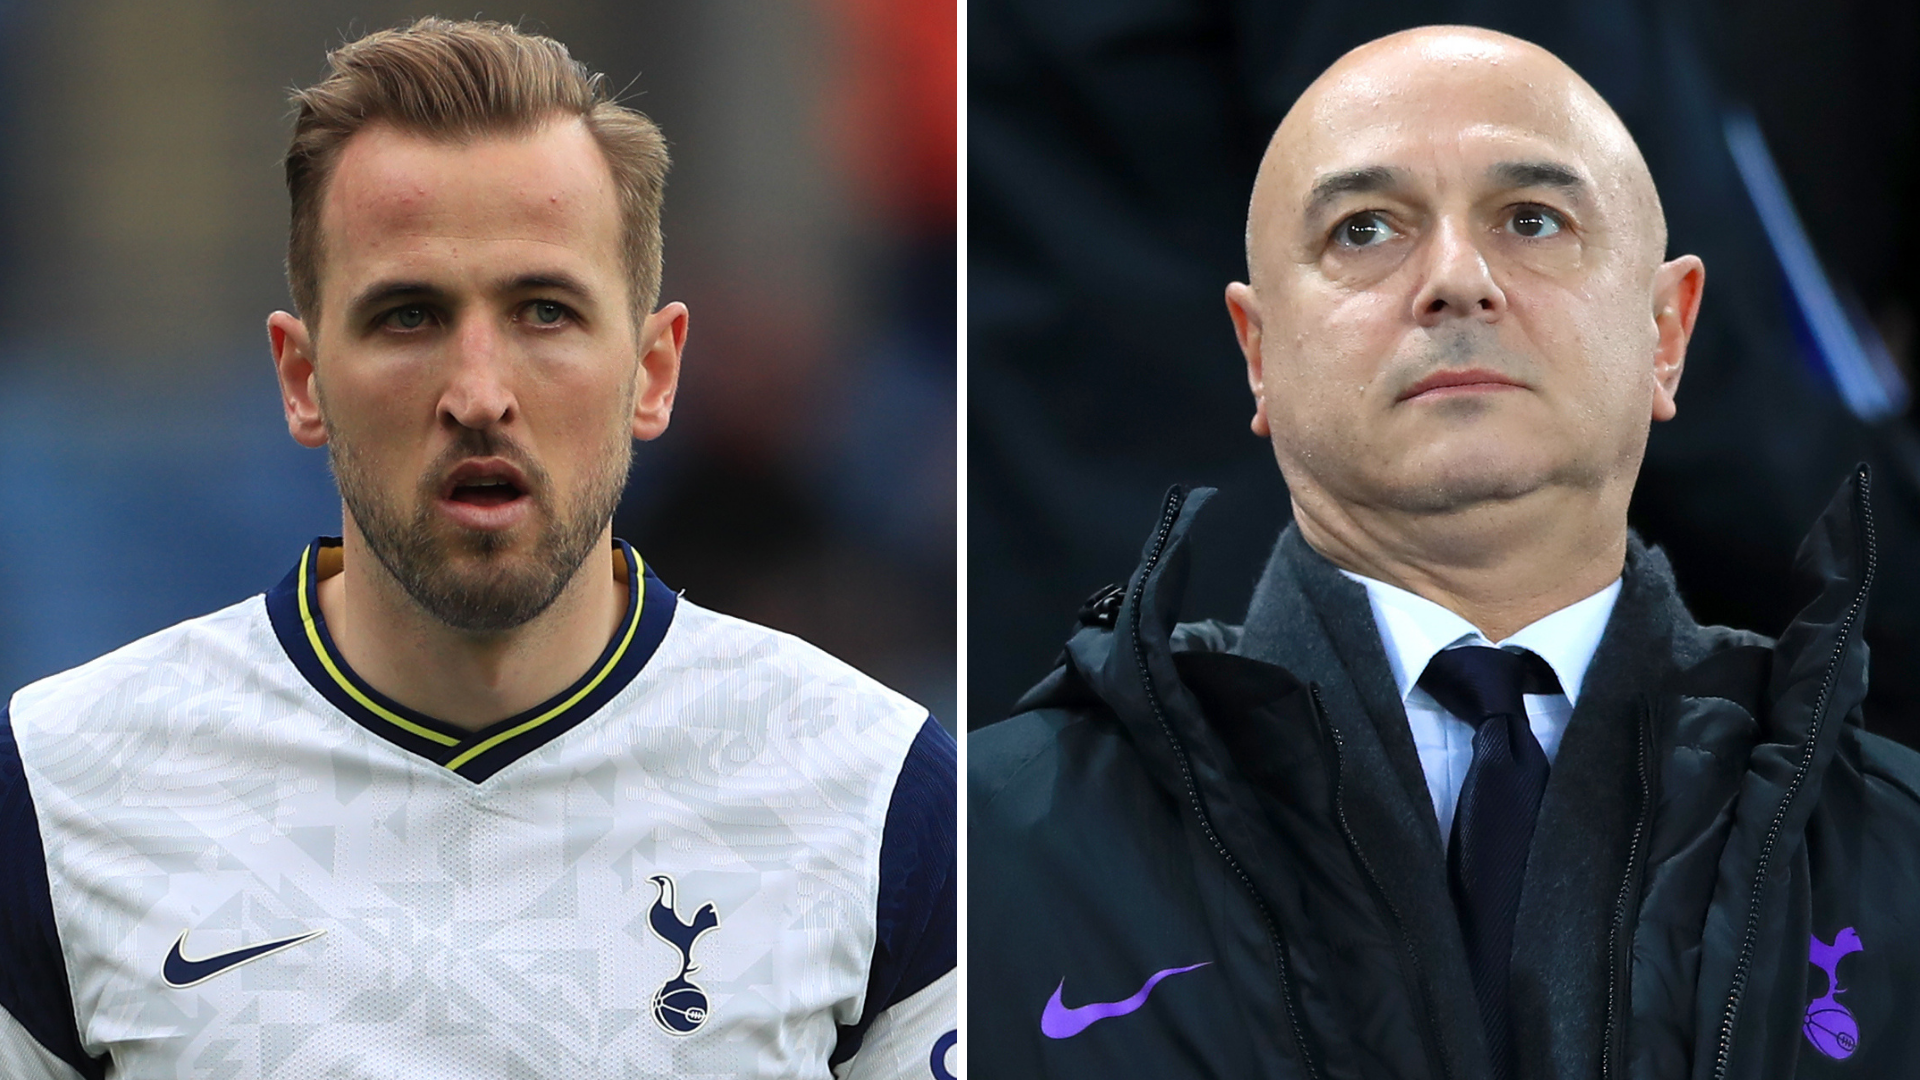 Harry Kane S Asking Price Significantly Raised By Daniel Levy In Hardball Bid To Keep Tottenham Star